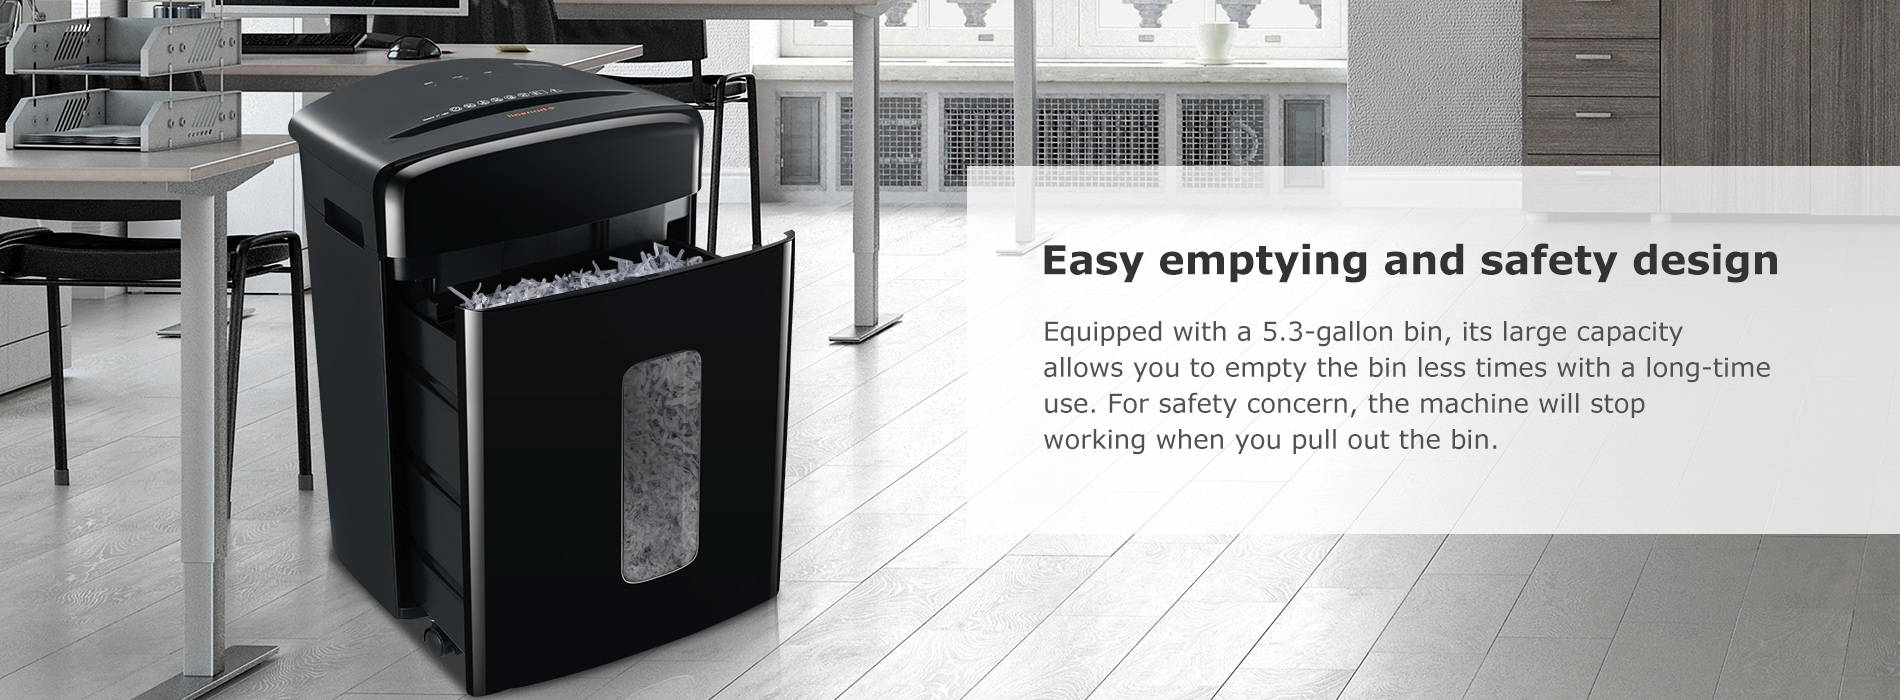 Easy emptying and safety design Equipped with a 5.3-gallon bin, its large capacit allows you to empty the bin less times with a long-time use. For safety concern, the machine will stop working when you pull out the bin.